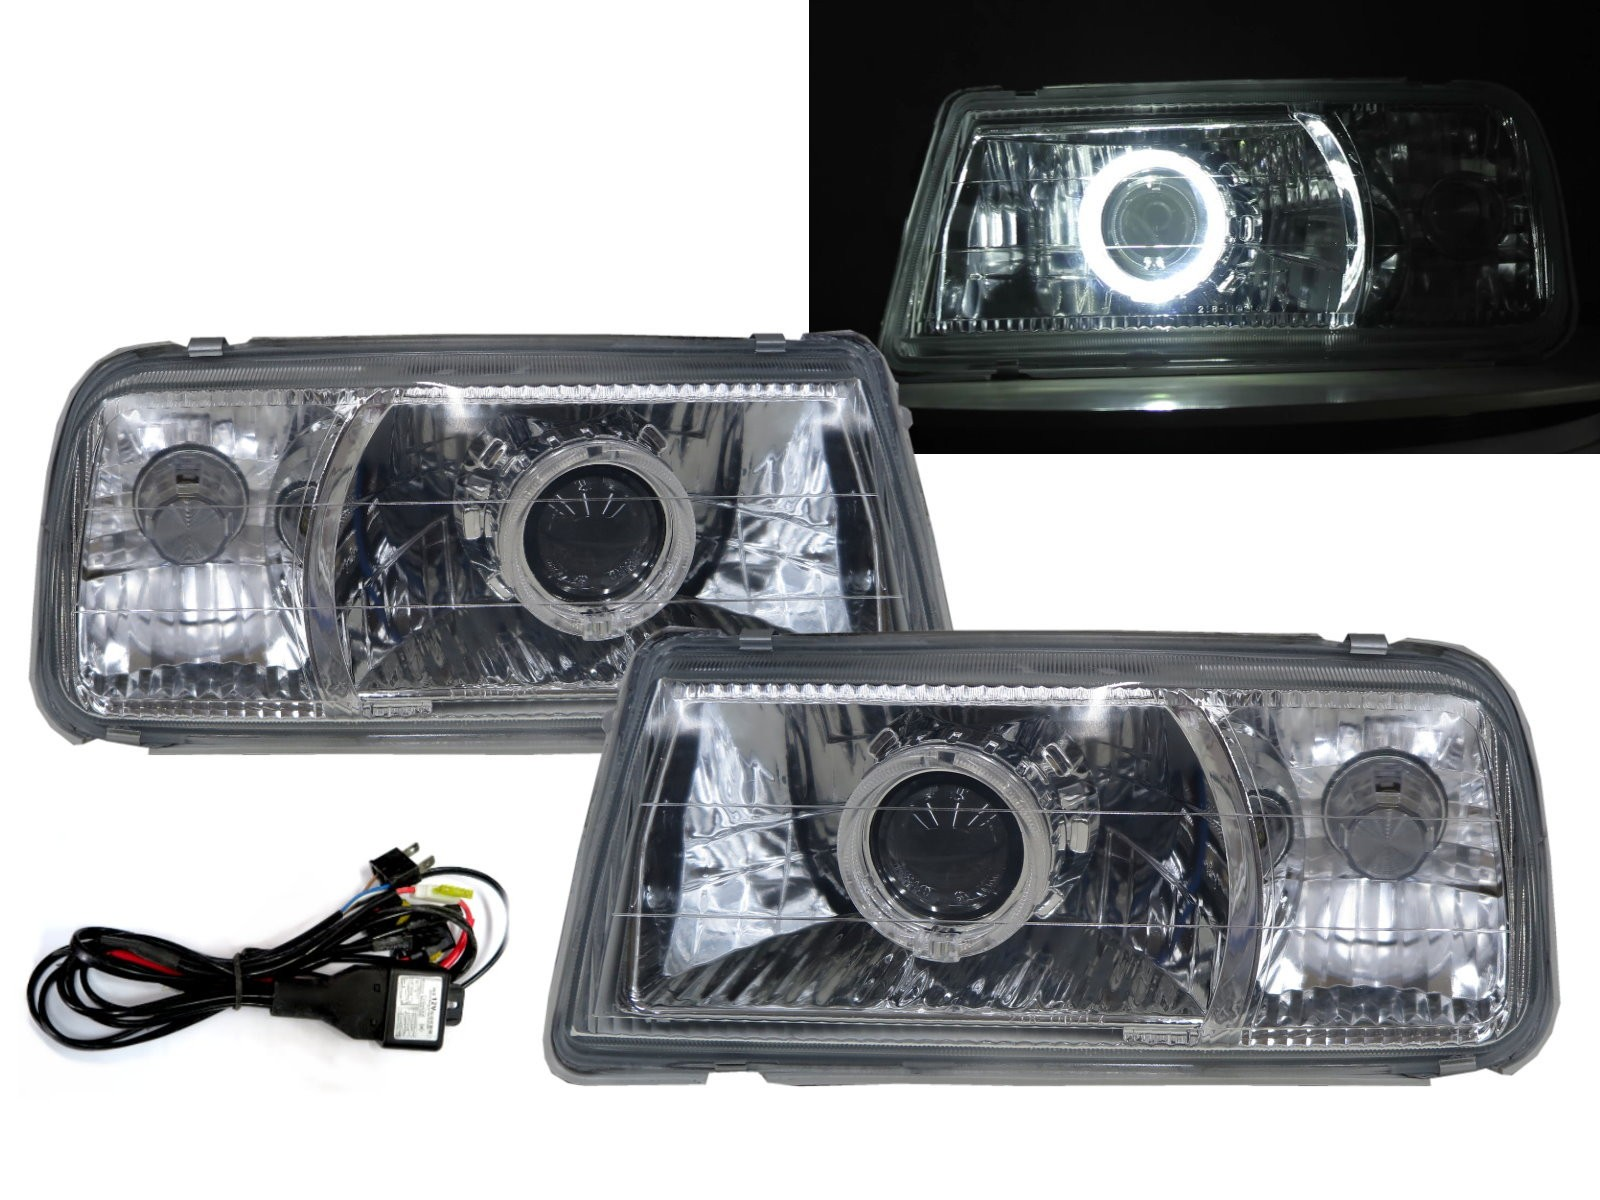 CrazyTheGod Tracker 88-98 Convertible 2D Guide LED Halo Headlight Headlamp Chrome V1 for GEO RHD